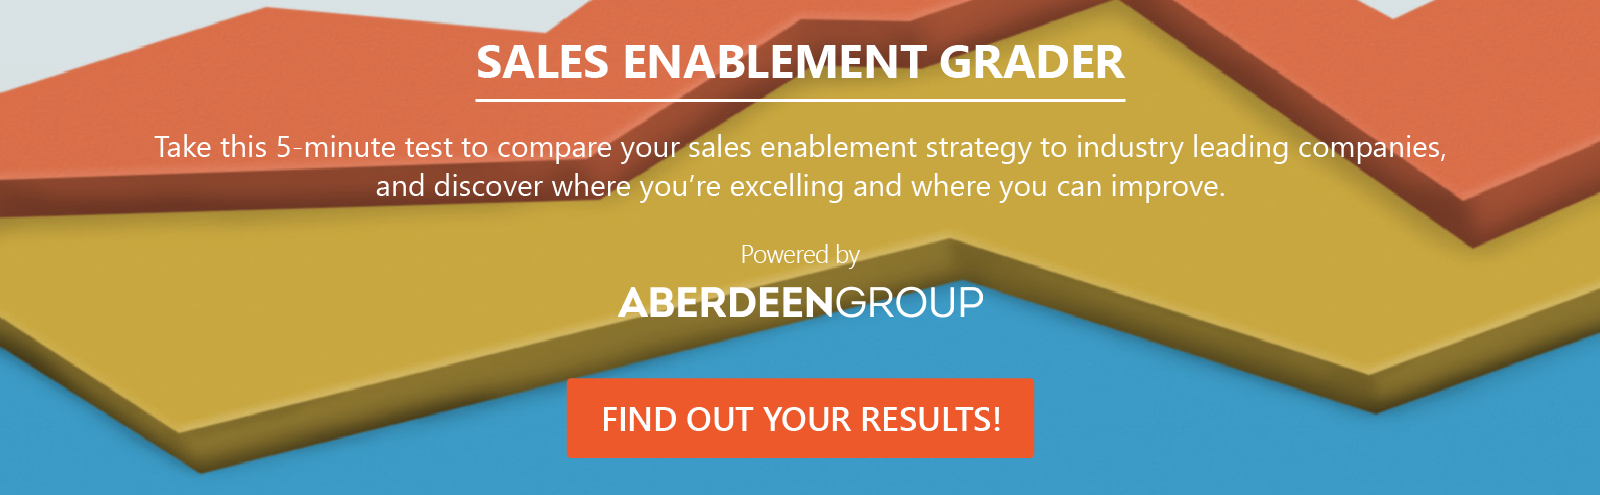 sales enablement grader tool